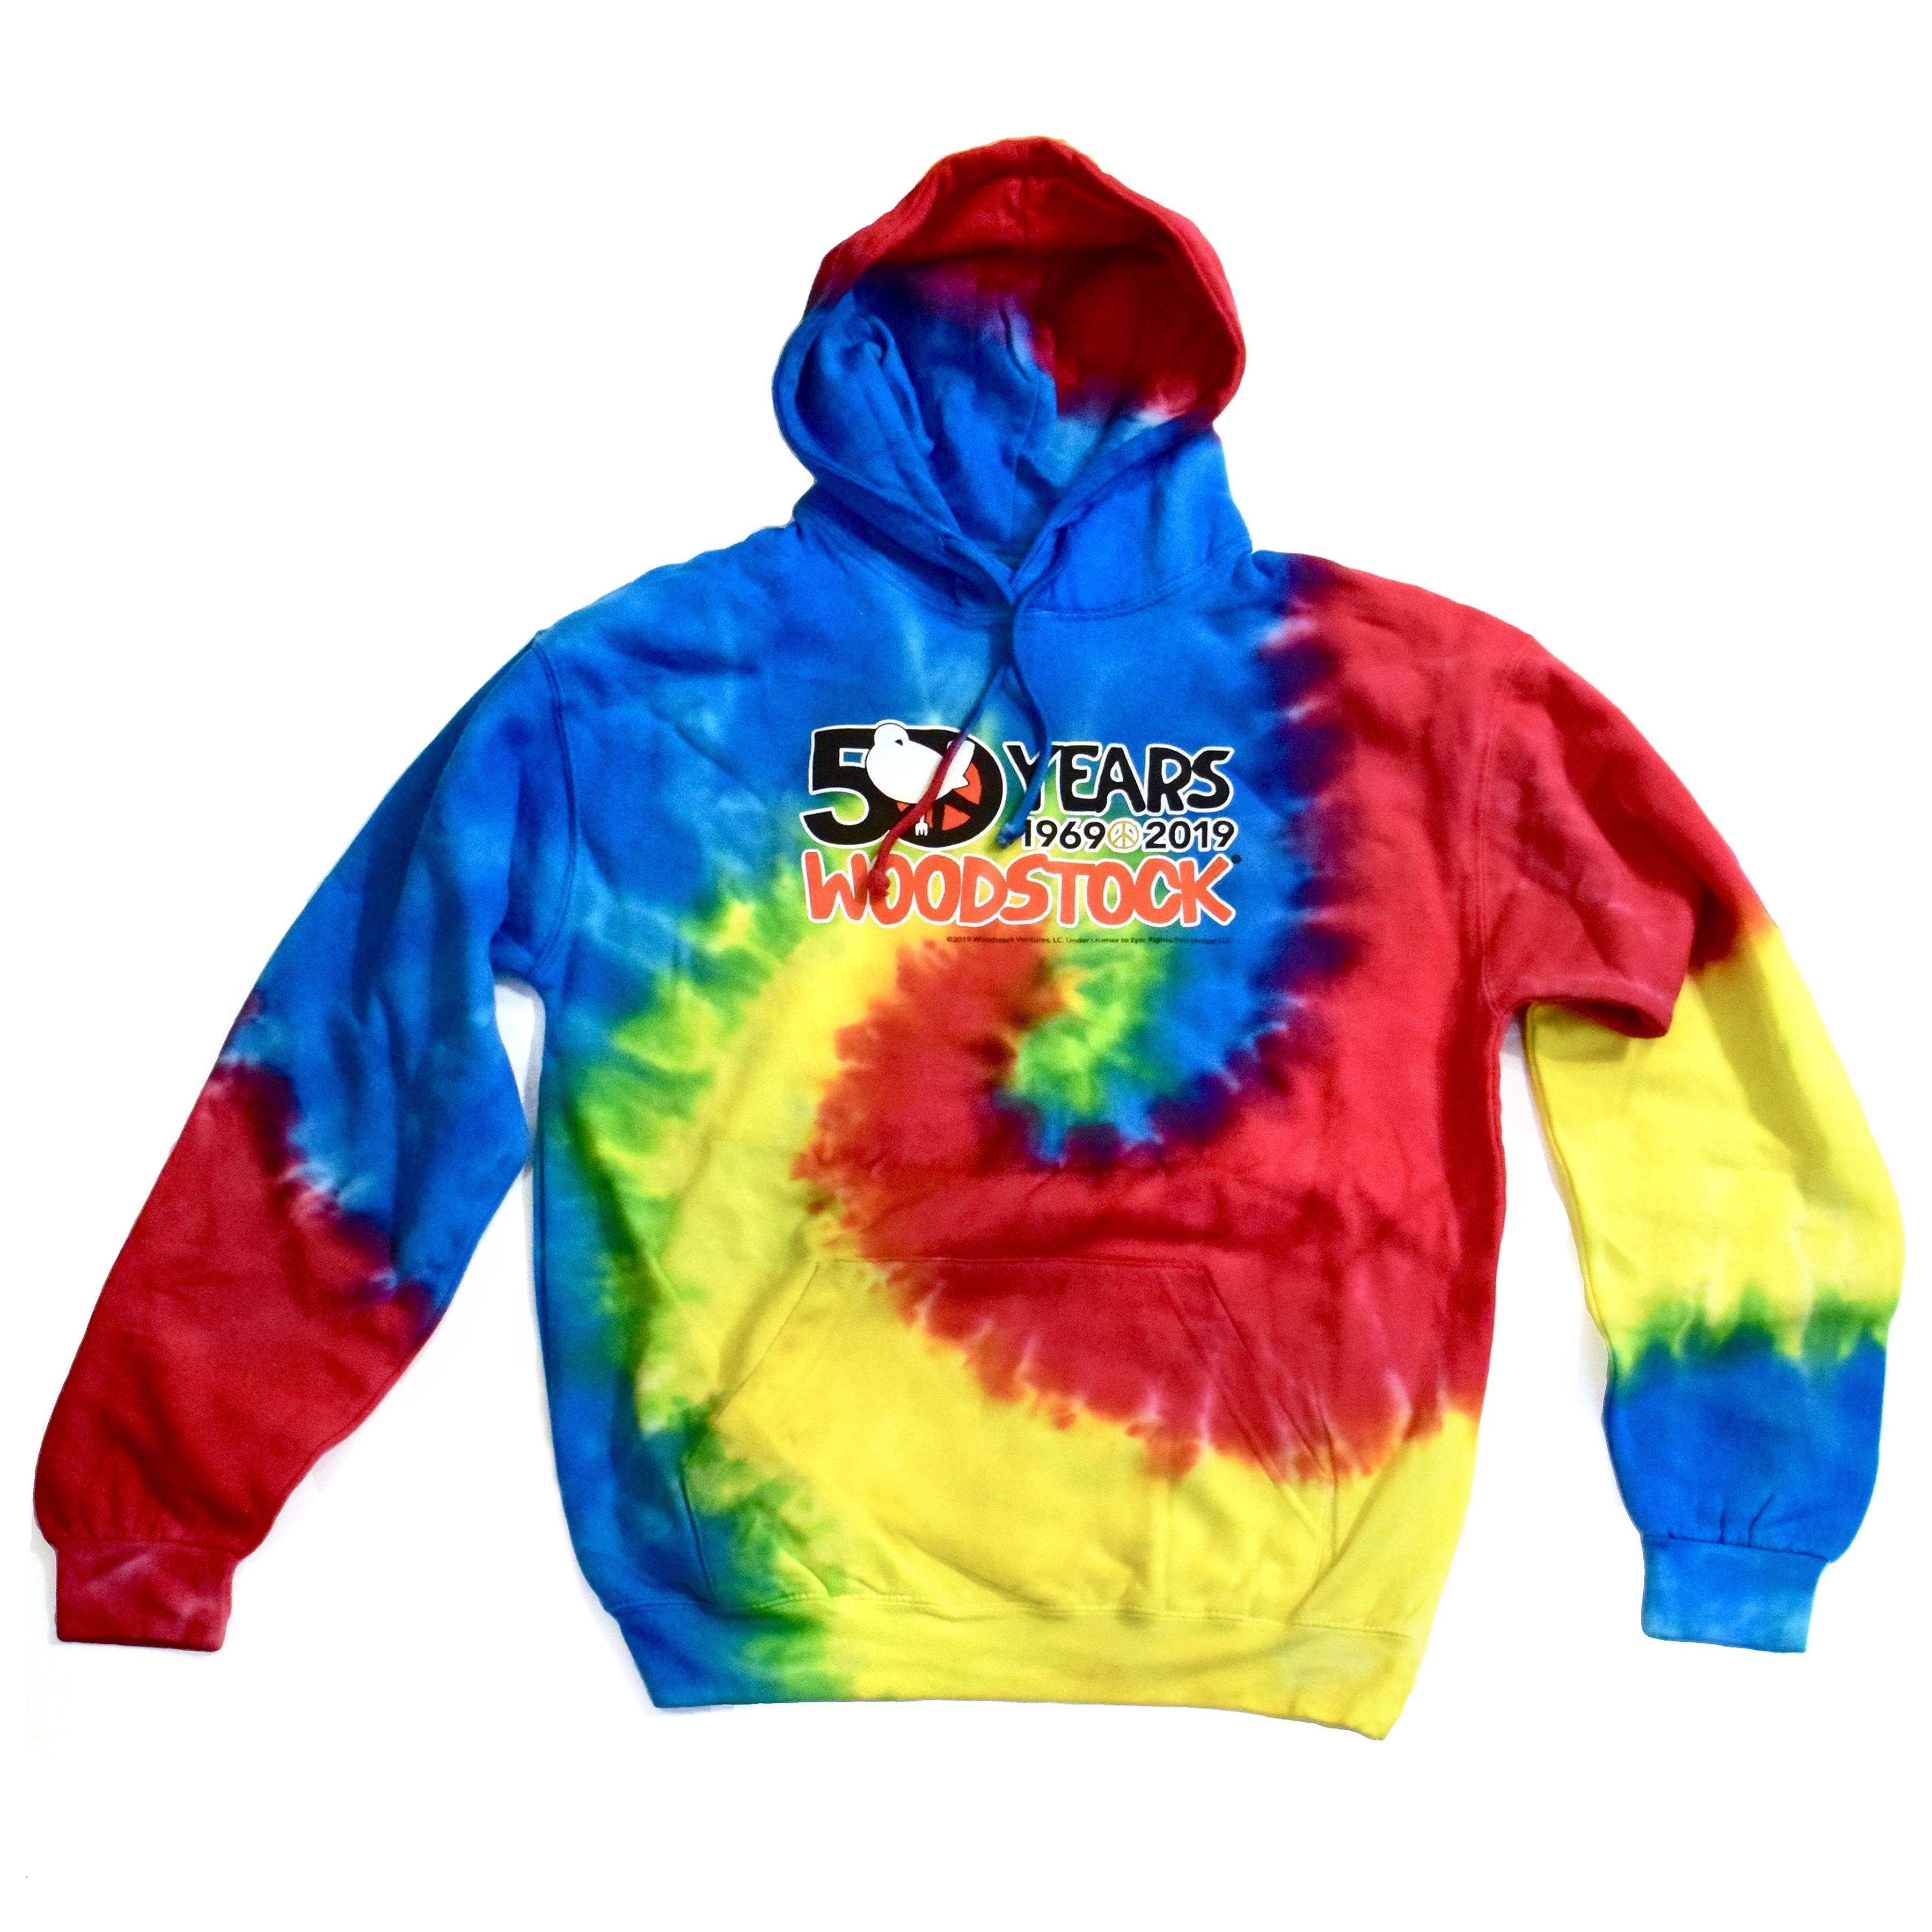 Vintage Woodstock 50th Hoody